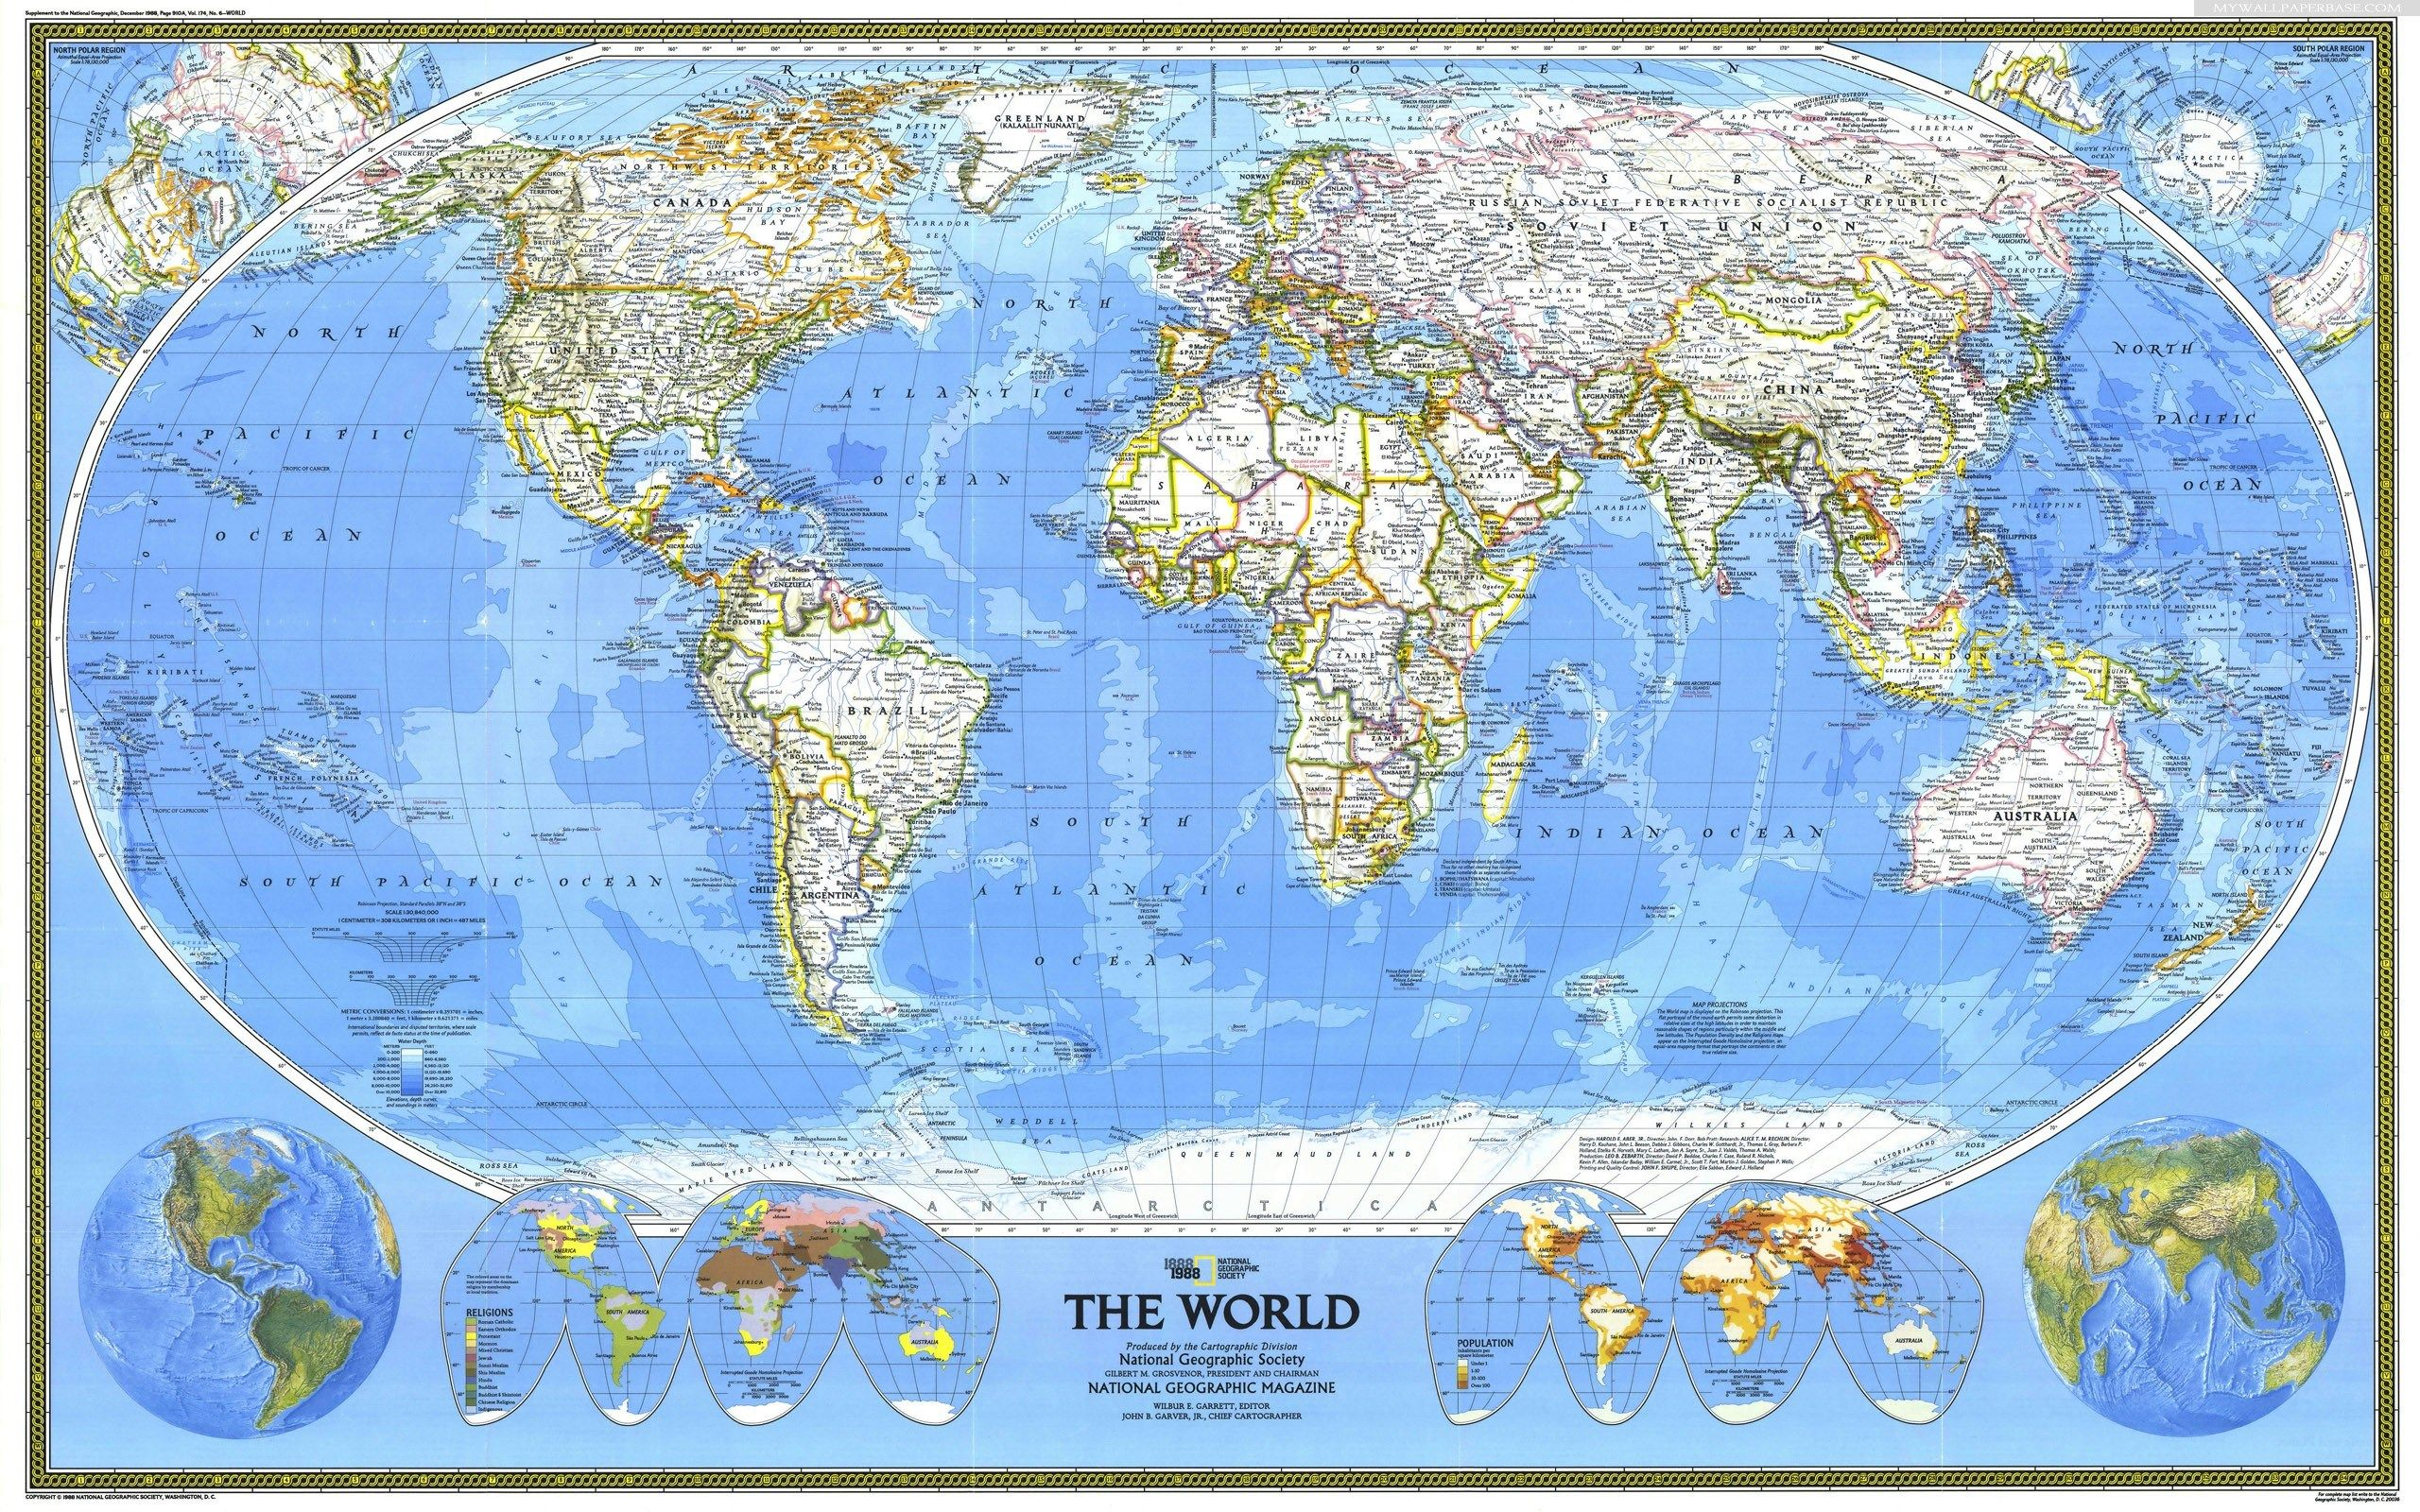 2560x1600px world map pc backgrounds hd by webber walls 2560x1600px world map pc backgrounds hd by webber walls national geographic gumiabroncs Gallery